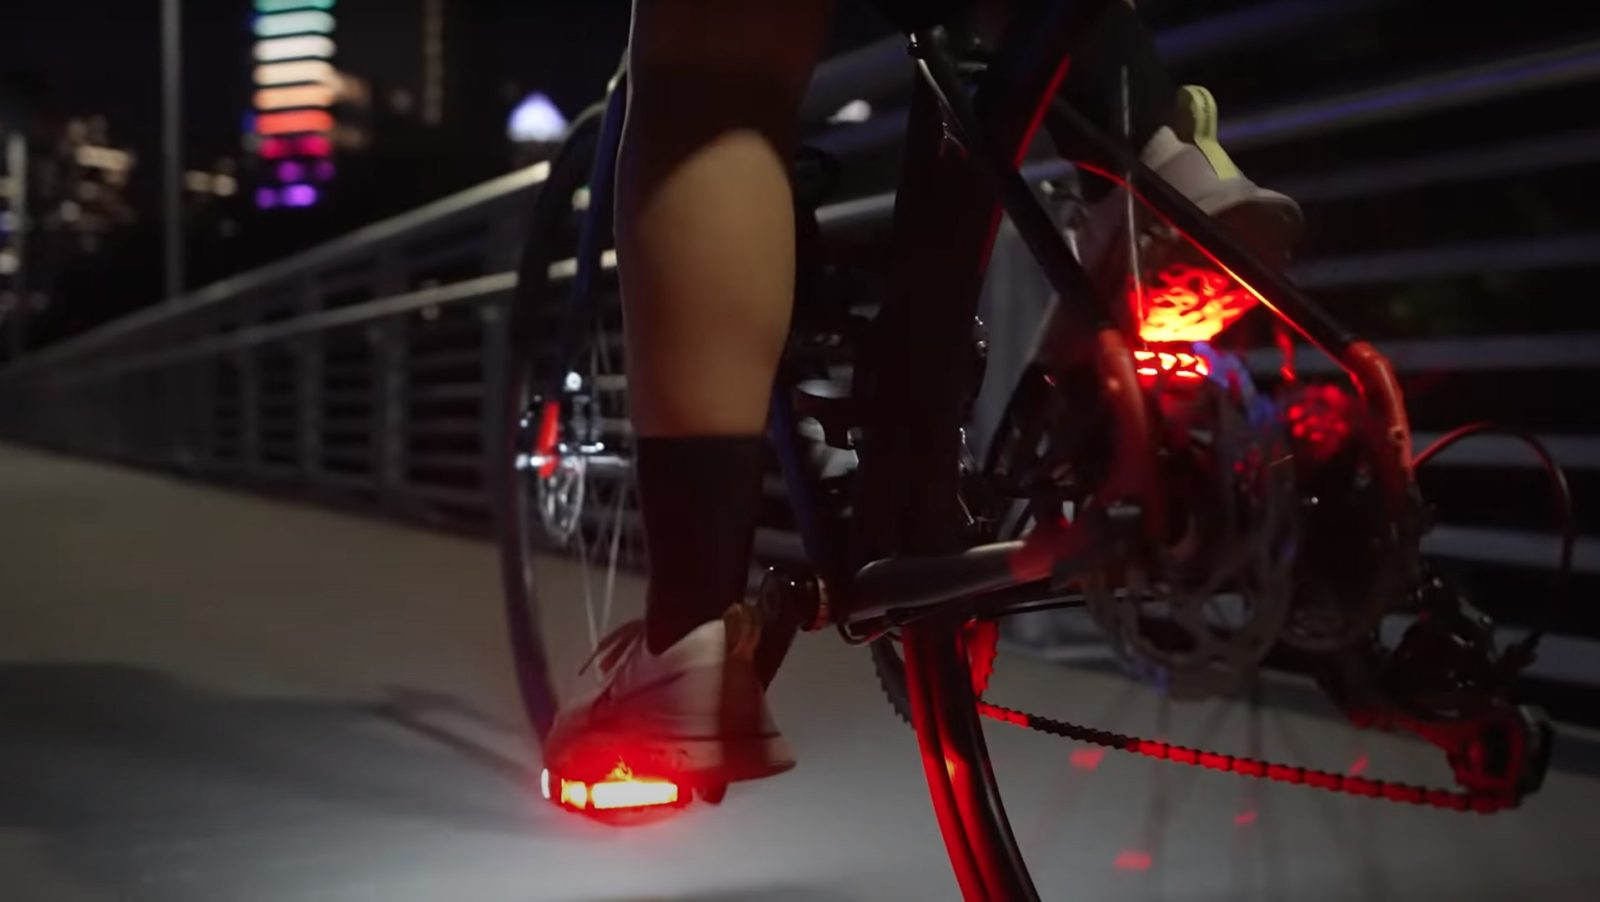 possibly-the-smartest-bike-light-pedals-ever-promise-to-boost-visibility-by-57-percent